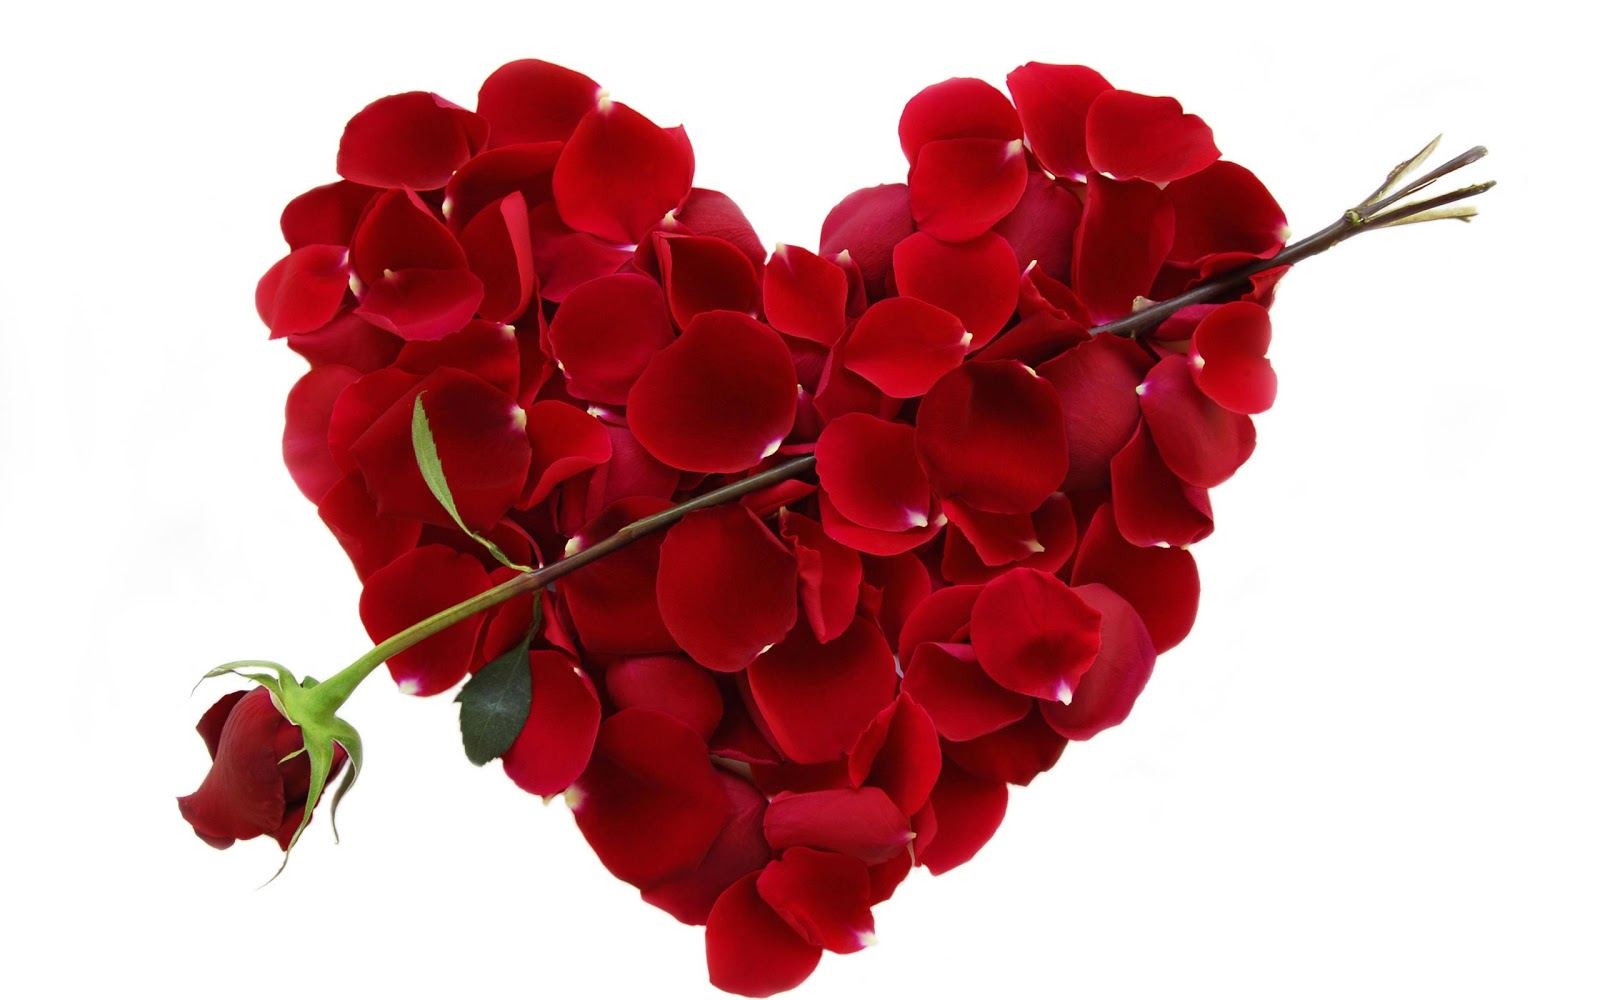 happy valentines day love rose petals heart hd wallpaper